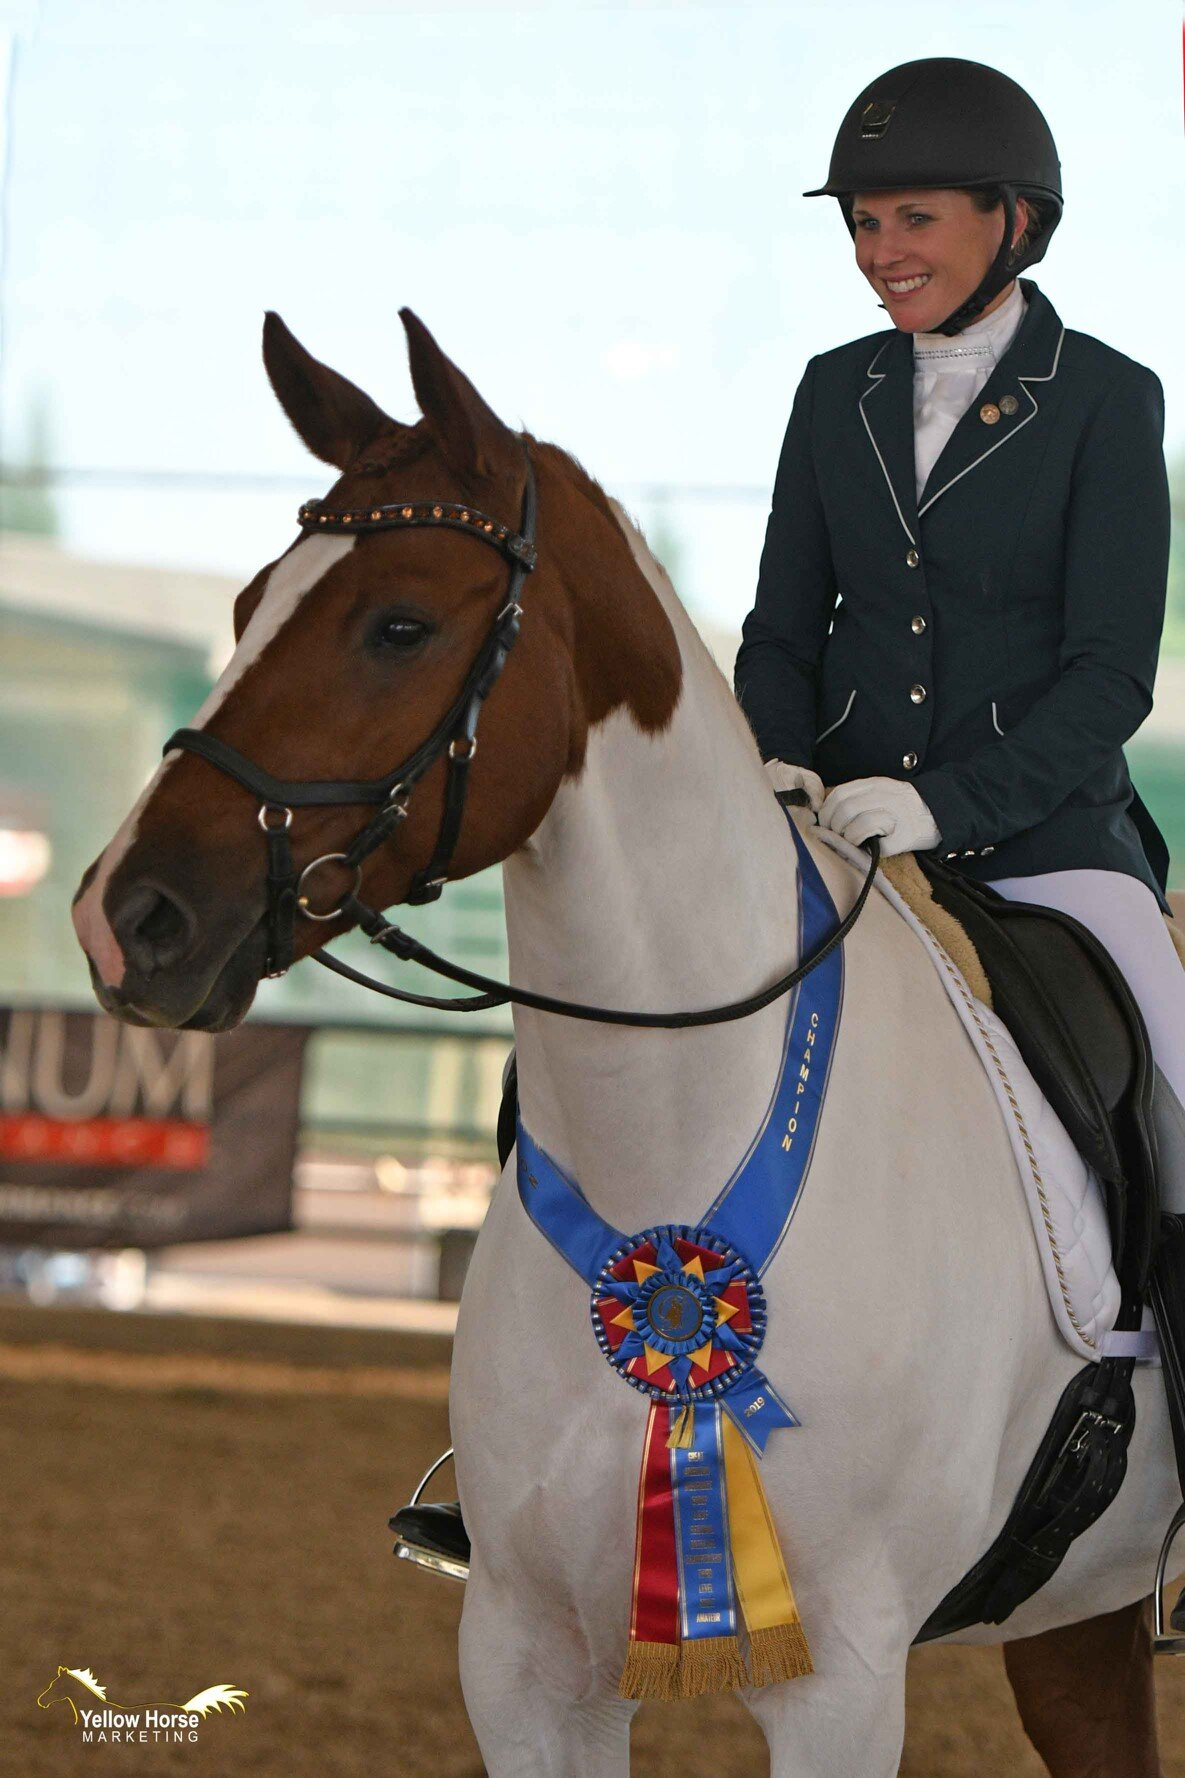 Kelly Prayter and her American Warmblood gelding Hemingway are all smiles after winning the Great American Insurance Group/USDF Region 7 Adult Amateur Third Level Championship at the 2019 CDS Championship Show. Photo: Jennifer M. Keeler/Yellow Horse Marketing.